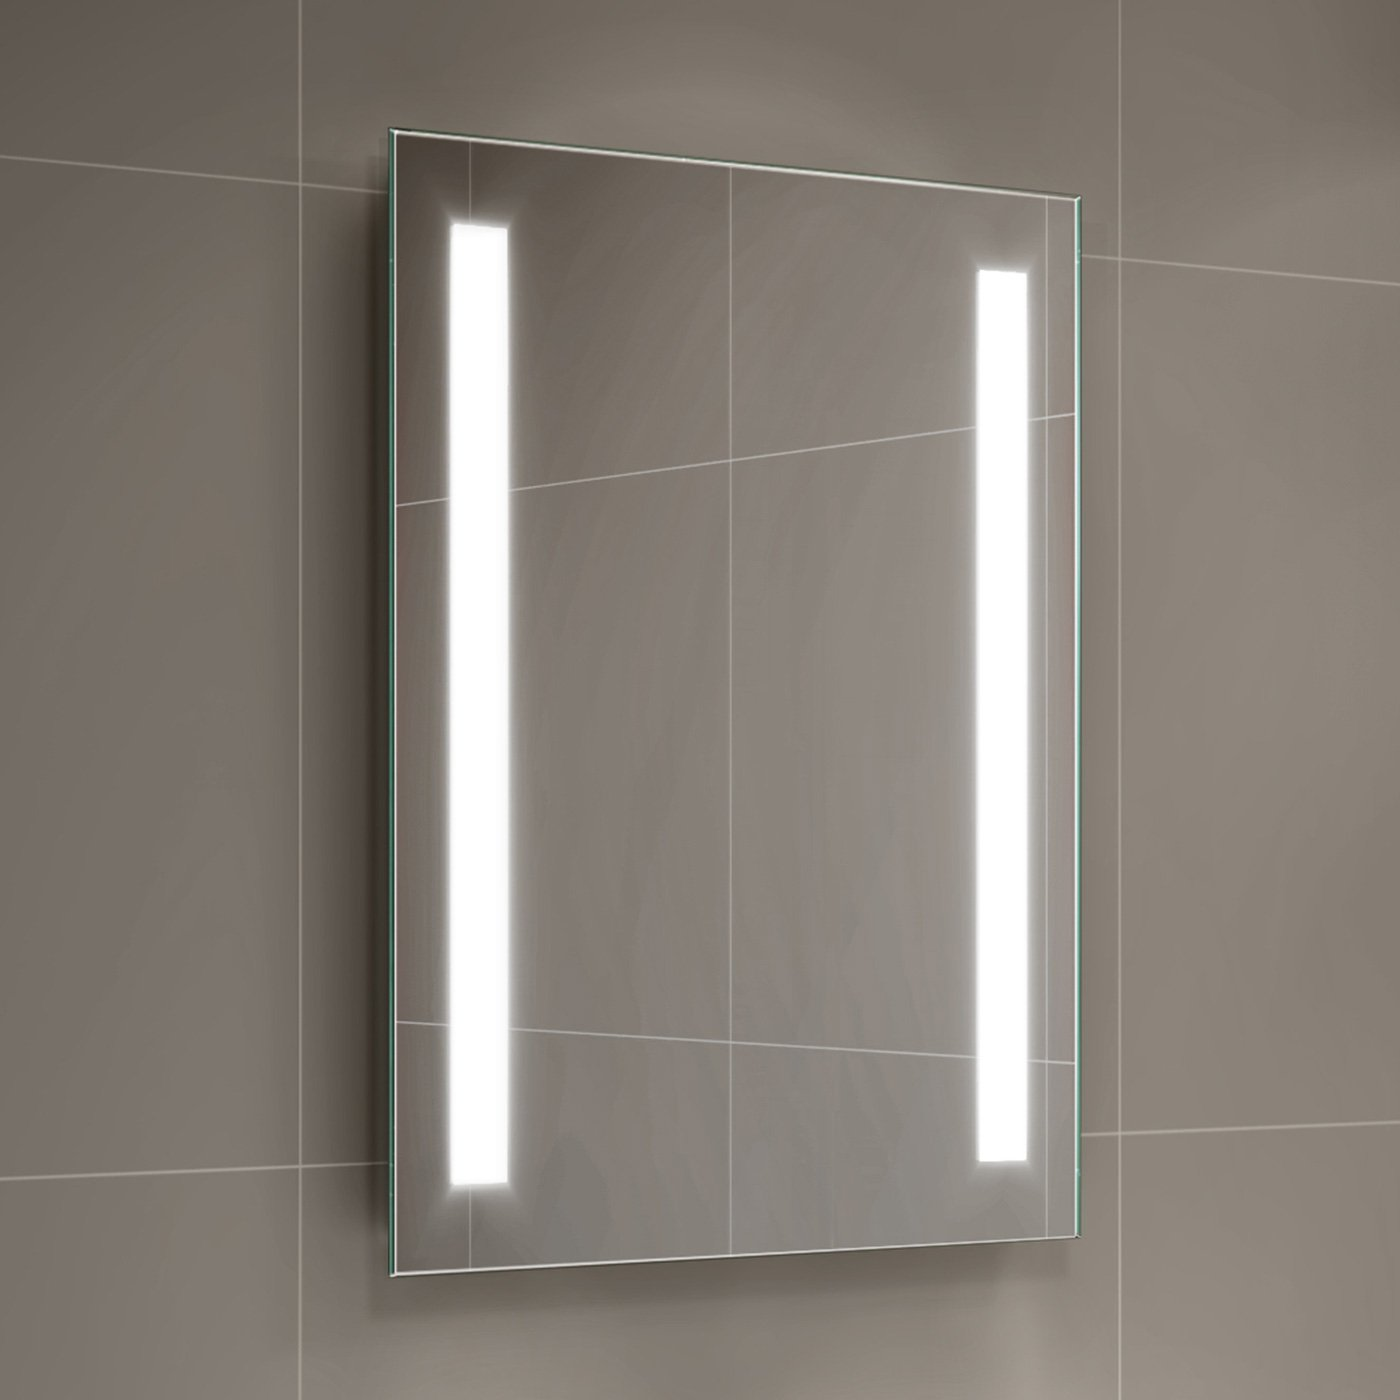 500 x 700 mm Modern Illuminated Battery LED Light Bathroom Mirror MC159 iBathUK